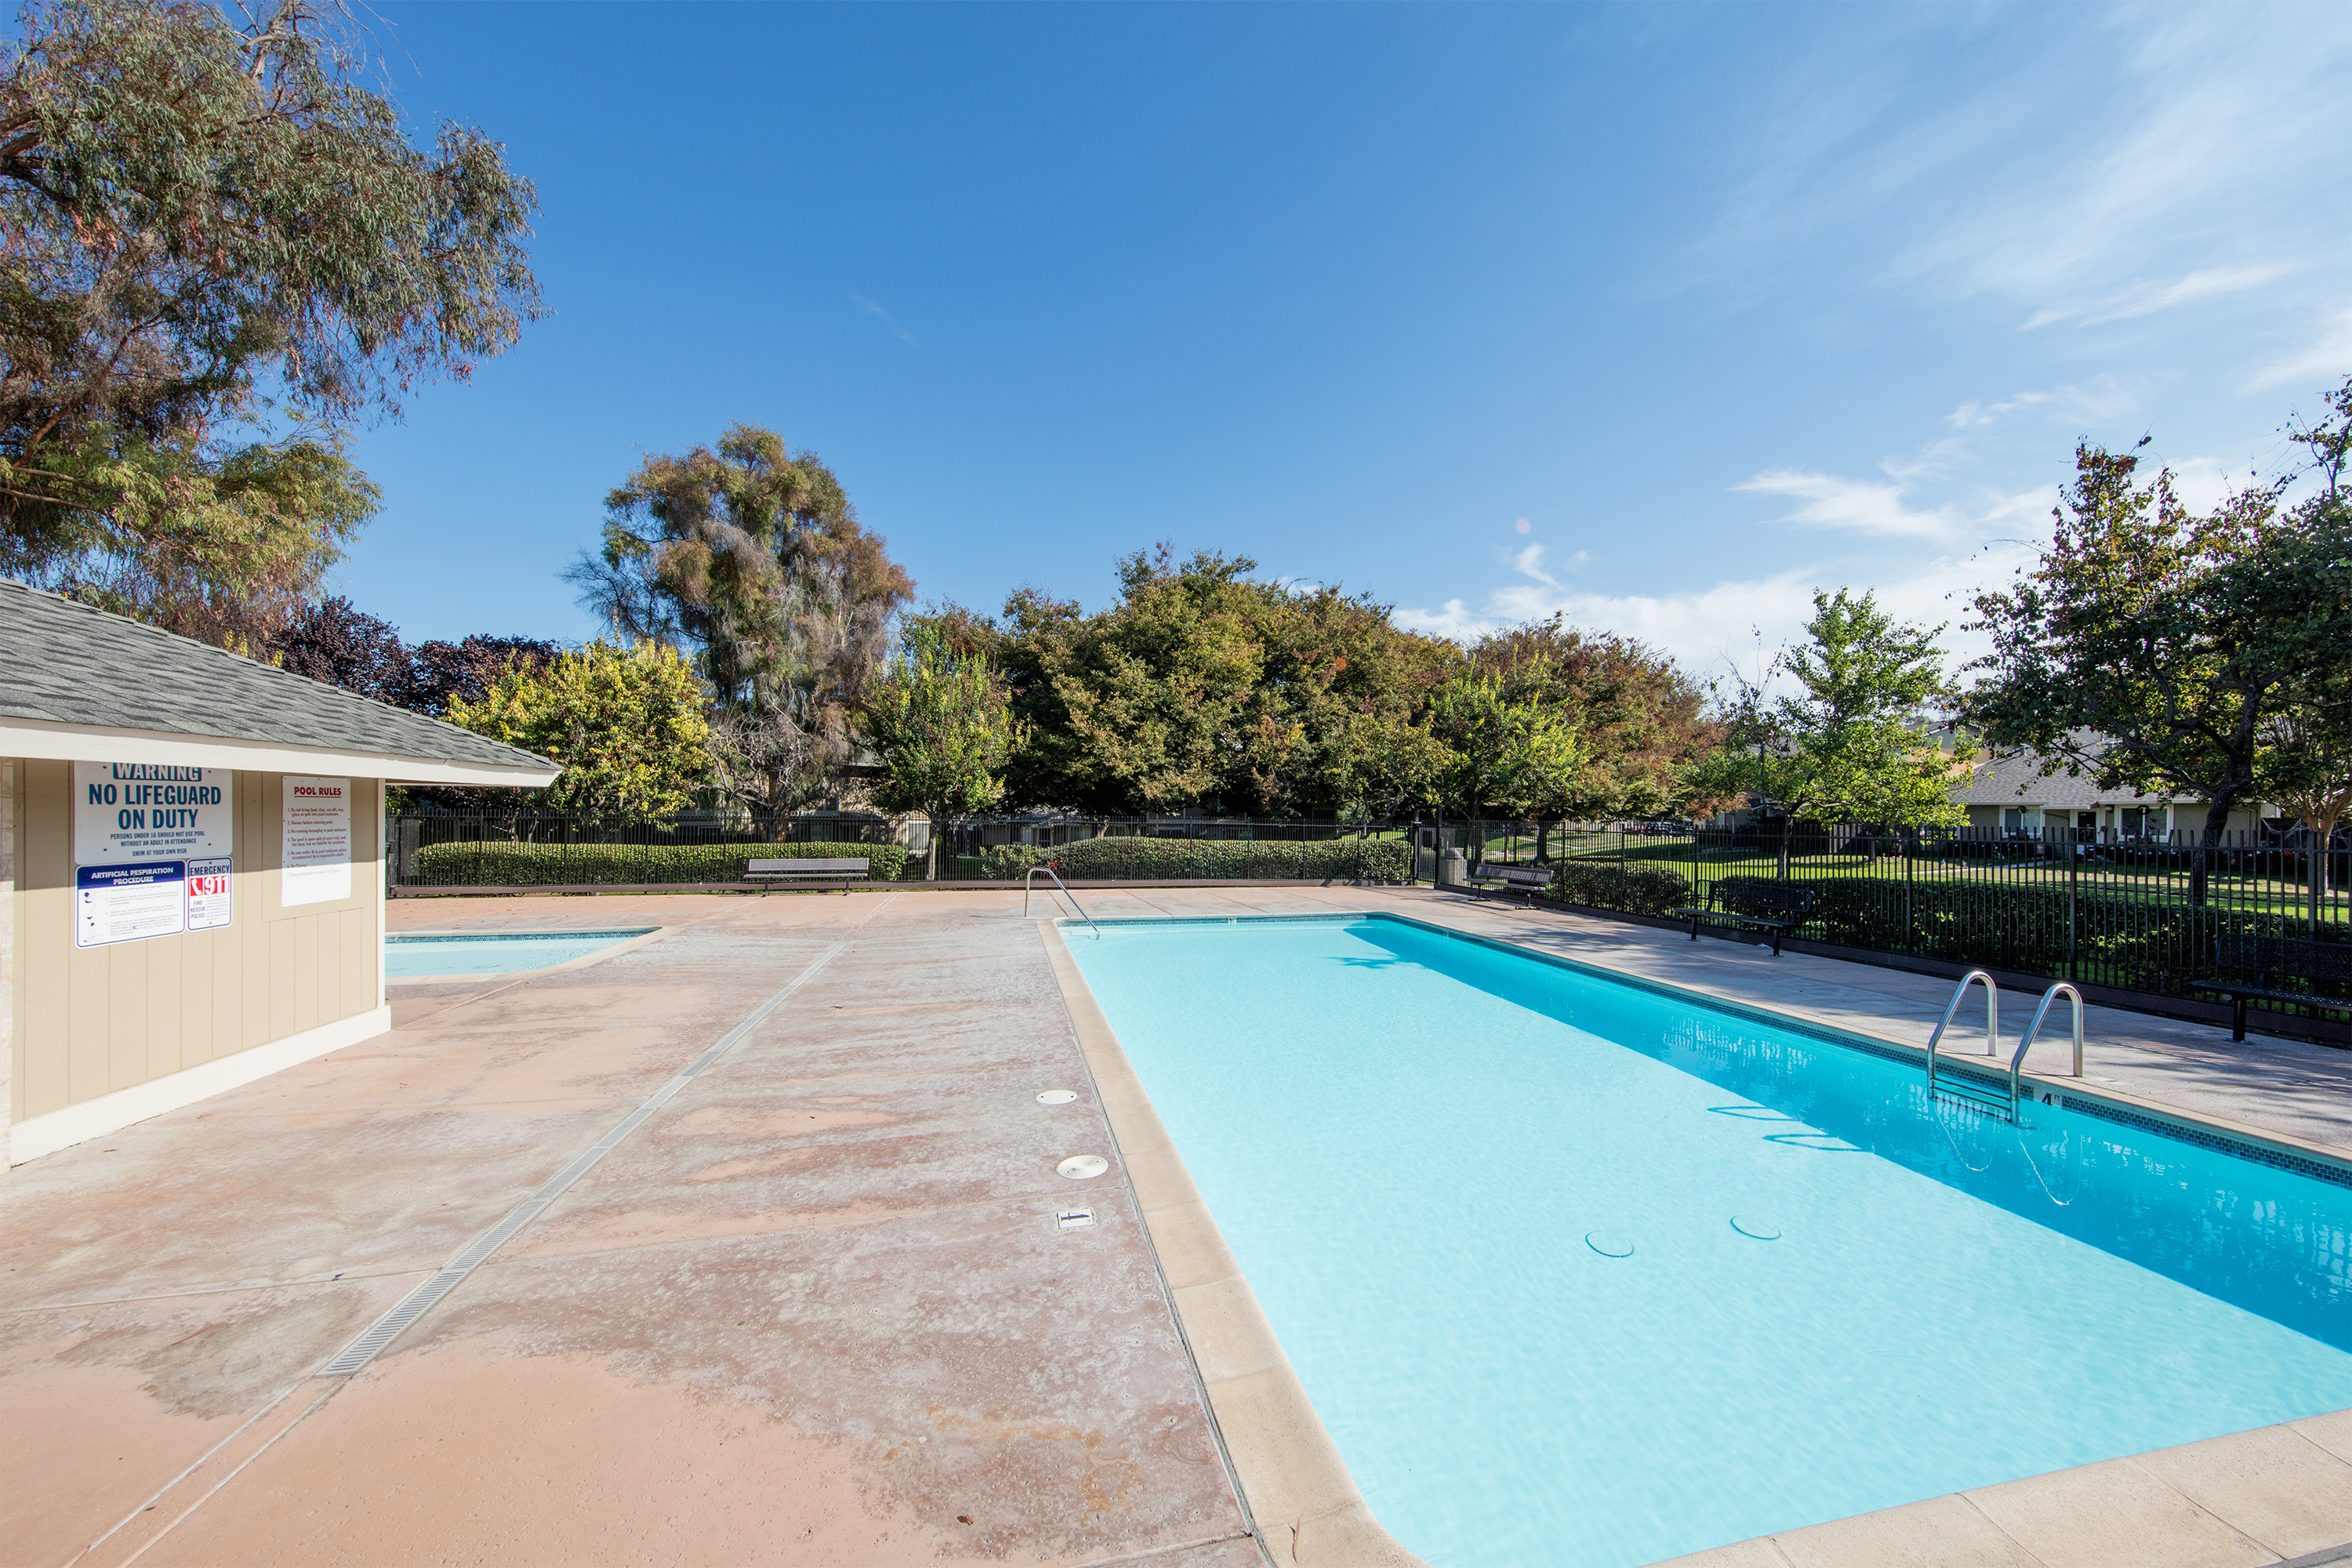 Swimming Pools A 2116 Galveston Ave D San Jose 95122 Homes For Sale